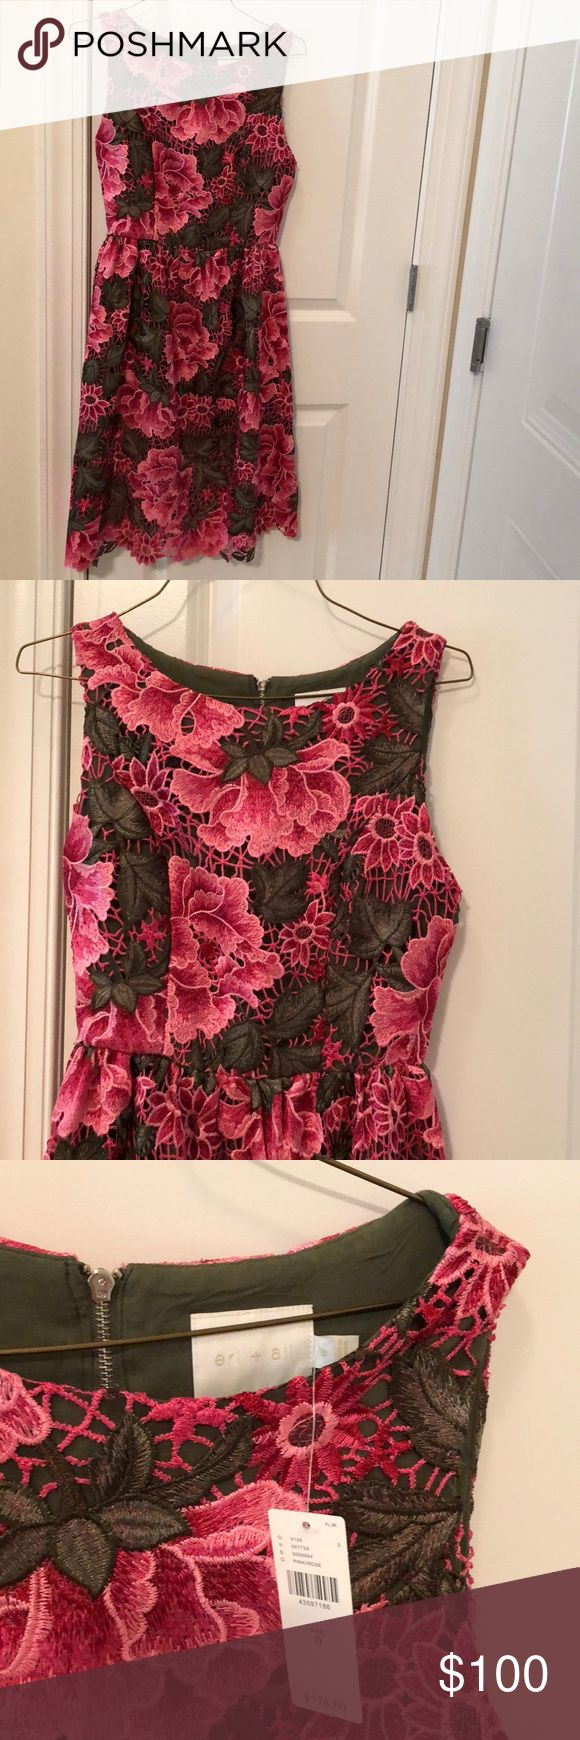 NWT Anthropologie Dress (0) Gorgeous! Anthropologie - Lalia Lace Dress (eri + ali)  Beautiful deep pink floral crochet/knit pattern over a deep olive green base. Eye-catching!   New with tags - I have 2 and ONE of them has about a 2-inch section on back that appears to have rubbed against something dark/some thread pulls. See the 3rd to last photo. Dress design makes it blend in.  Size - 0  Care - hand wash cold, line dry  Offers welcome! Anthropologie Dresses Midi